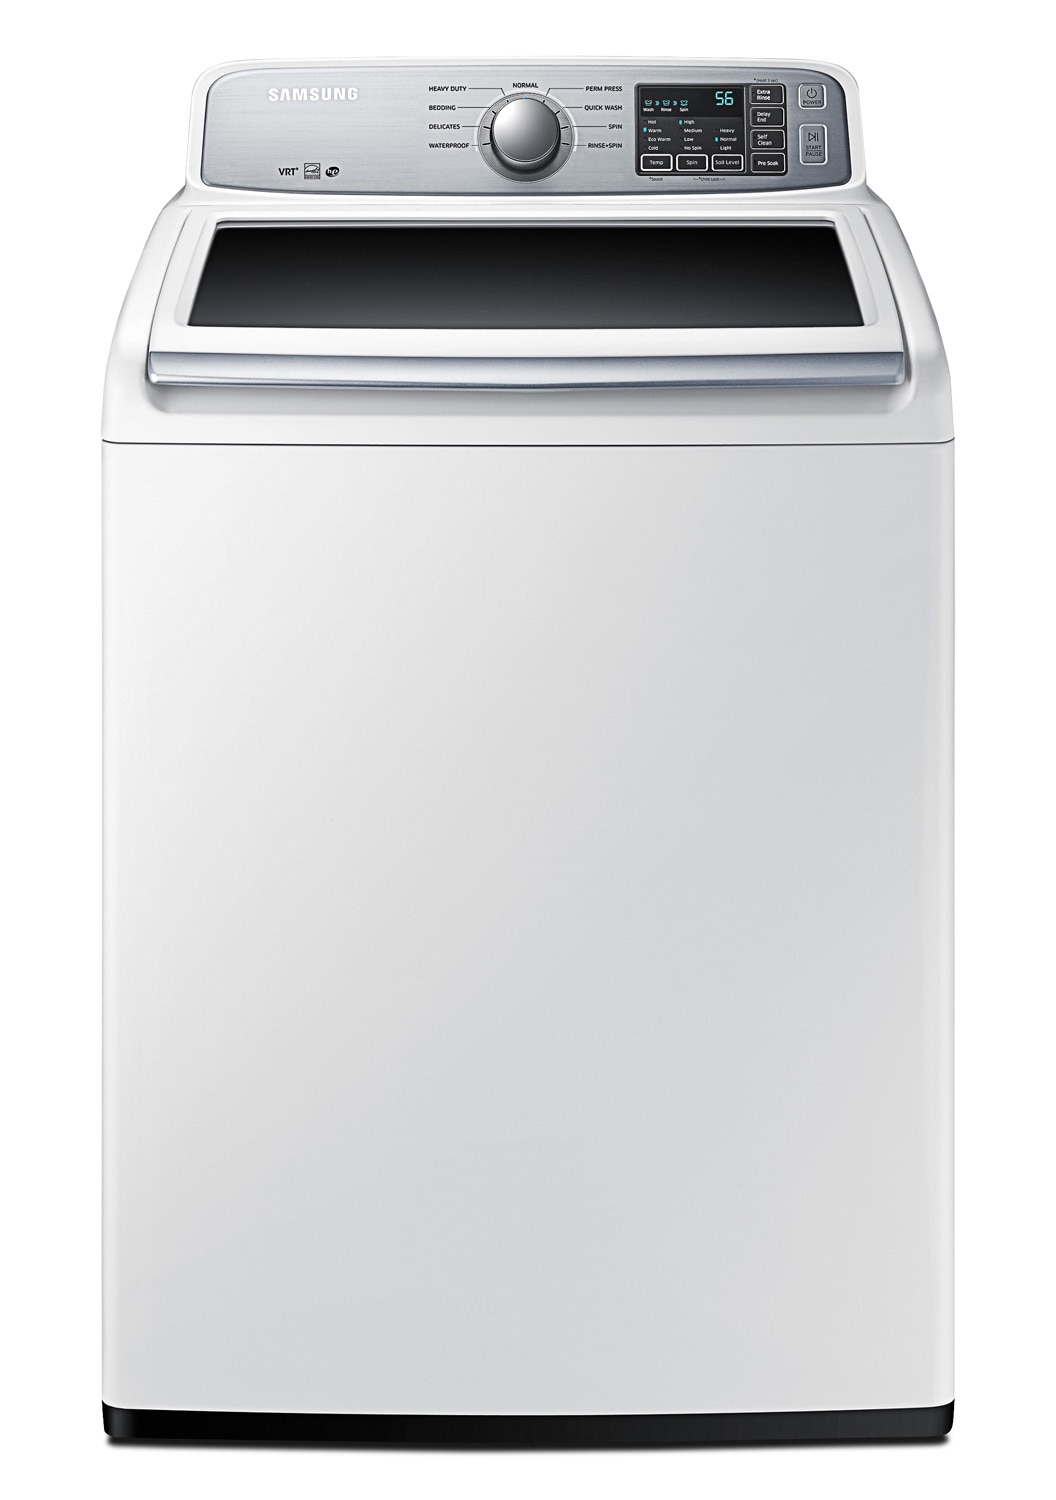 samsung washer samsung white top load washer 5 2 cu ft iec wa45h7000aw s